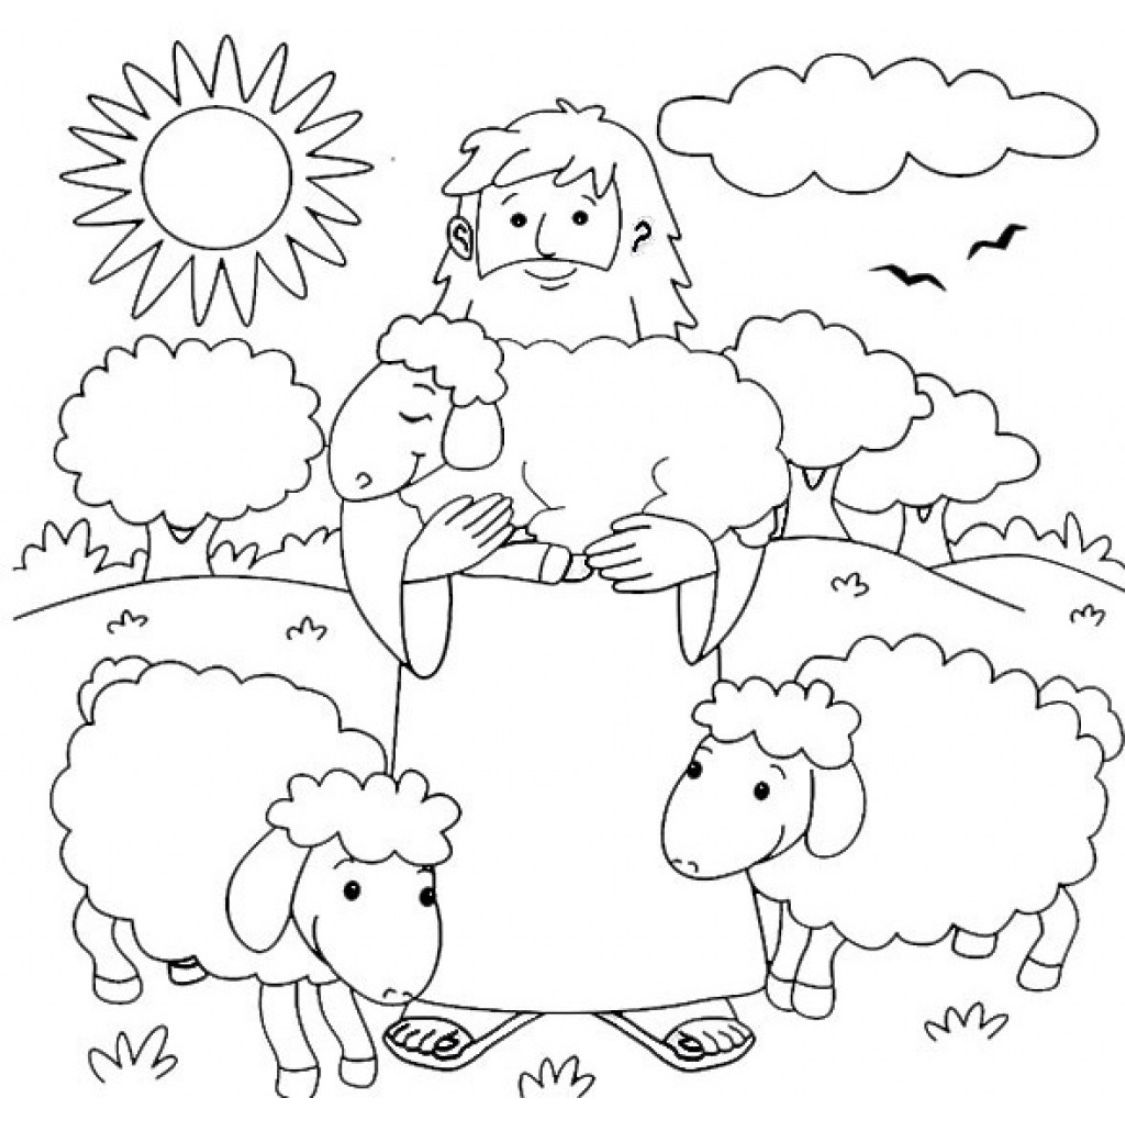 The Good Shepherd Coloring Page Sunday School Coloring Pages